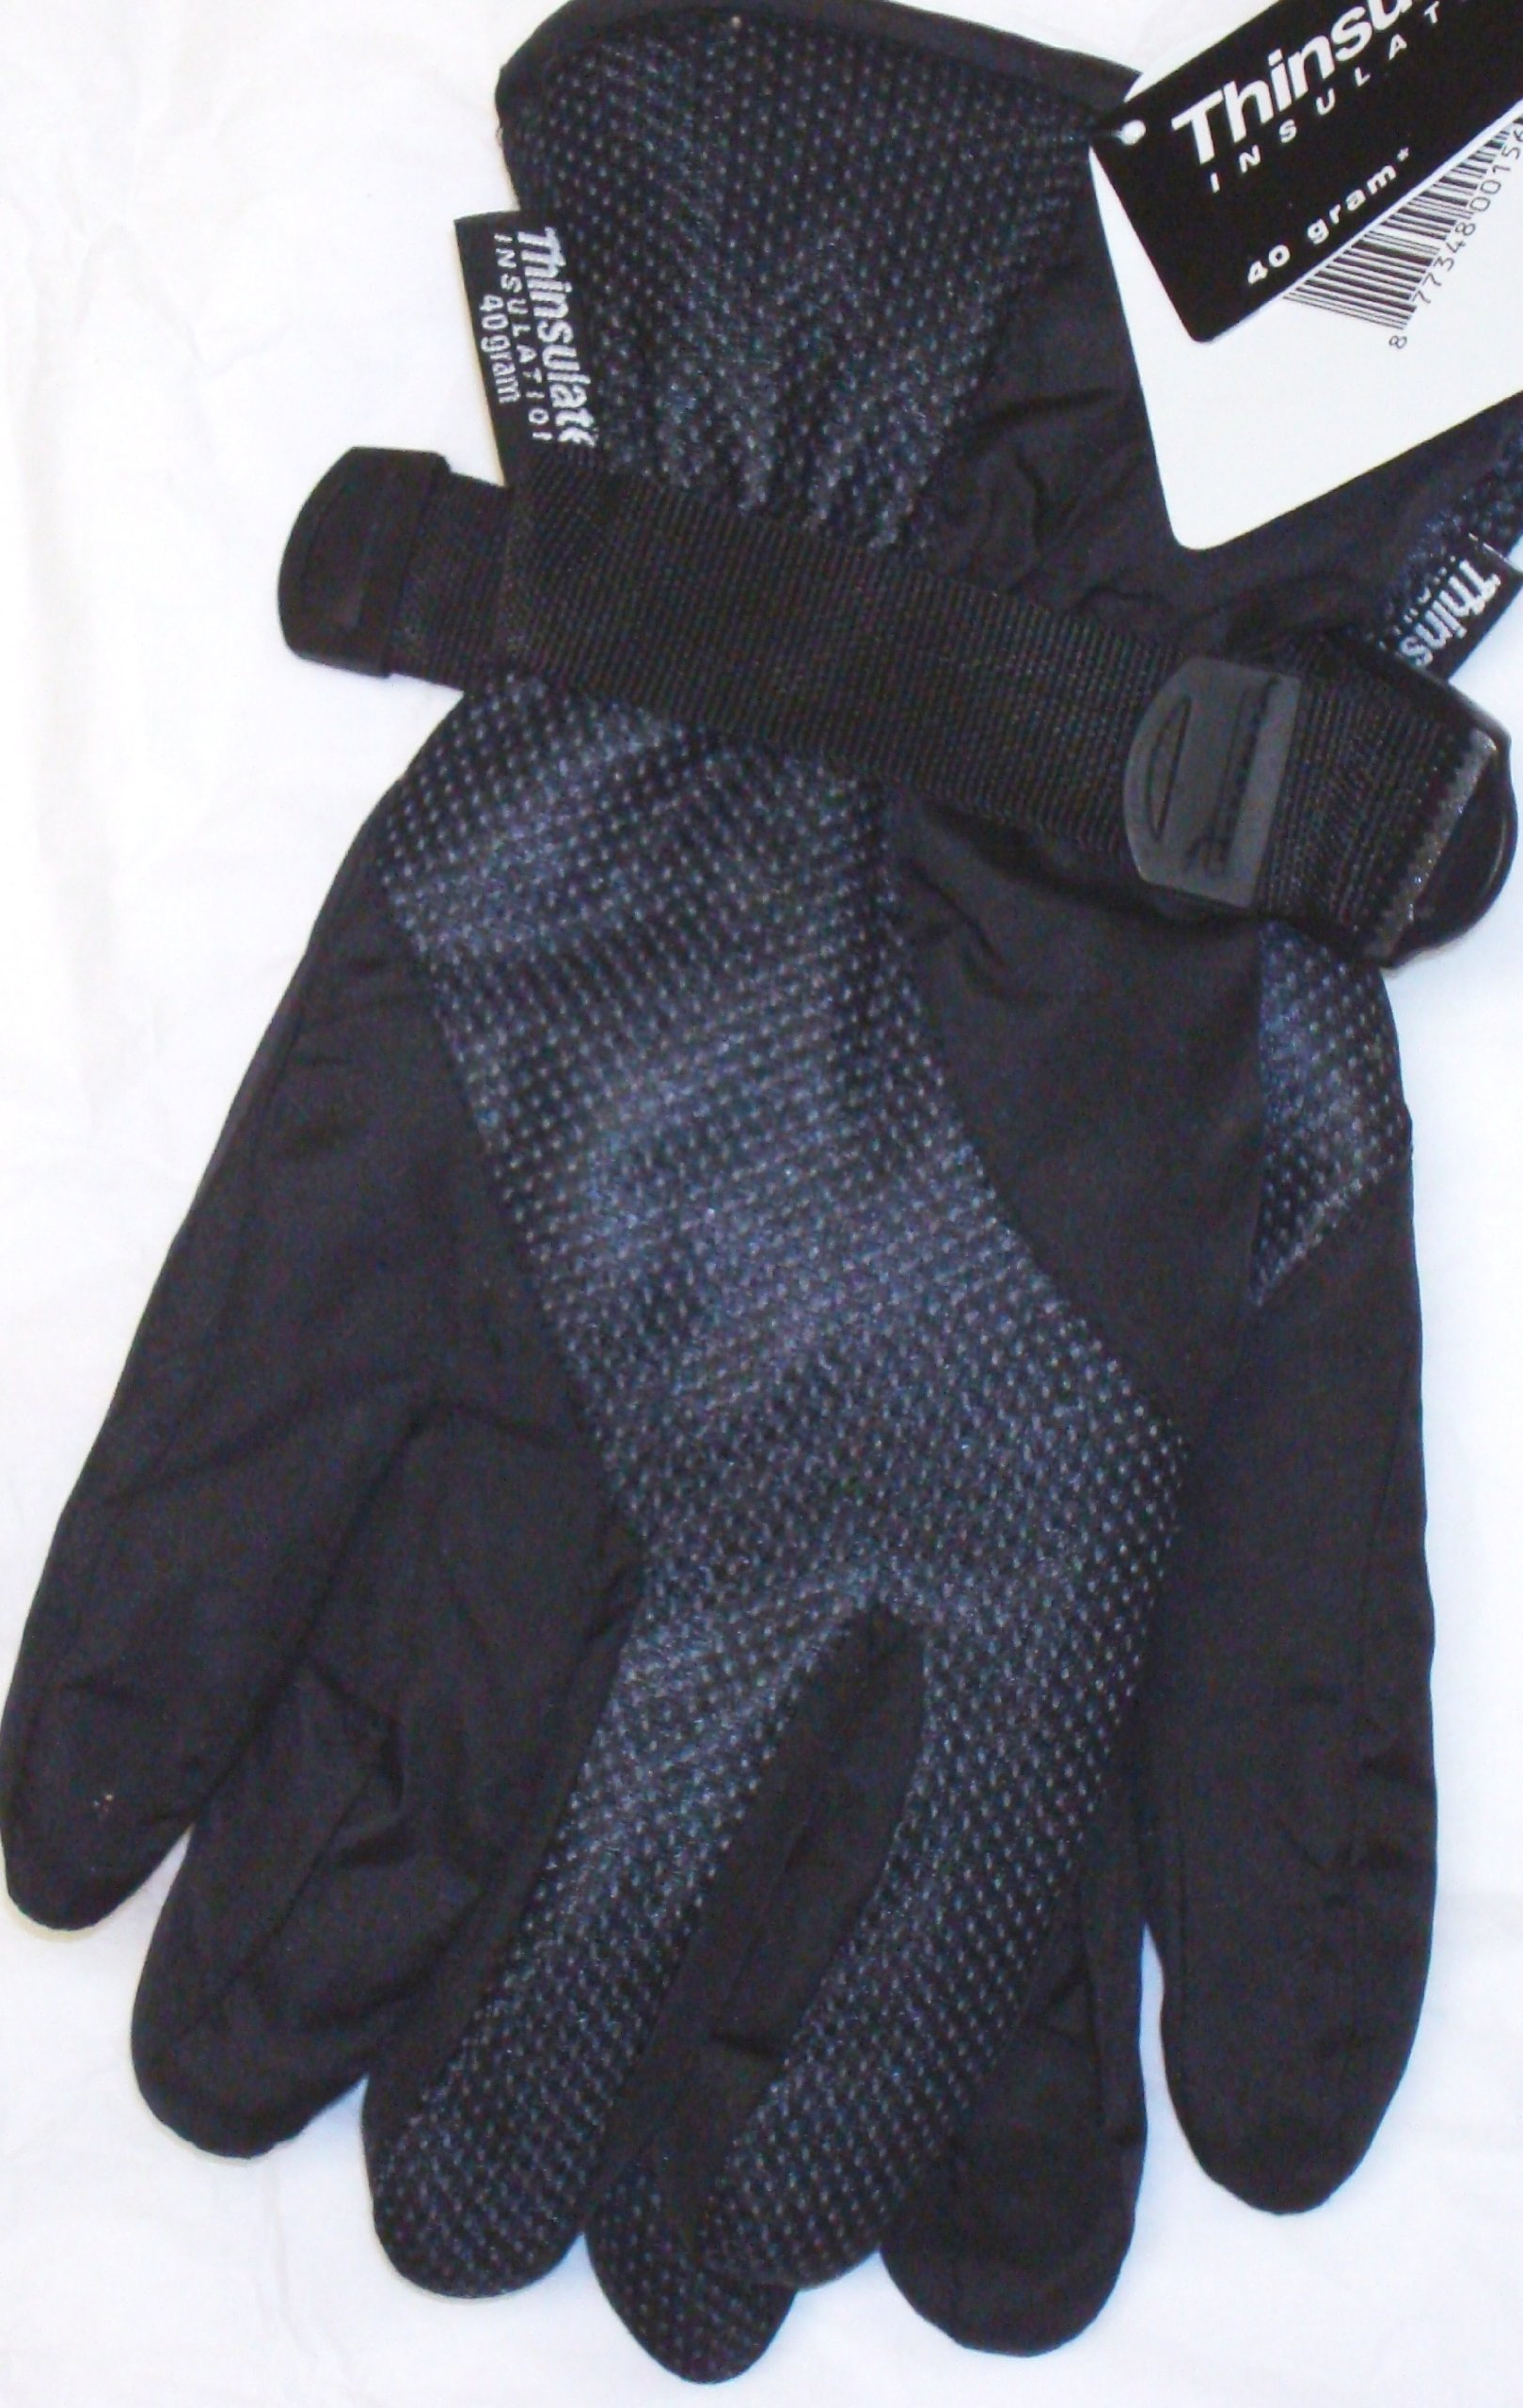 Waterproof Black Color Ski Gloves Thinsulate Lining for Women Size Med/ Large